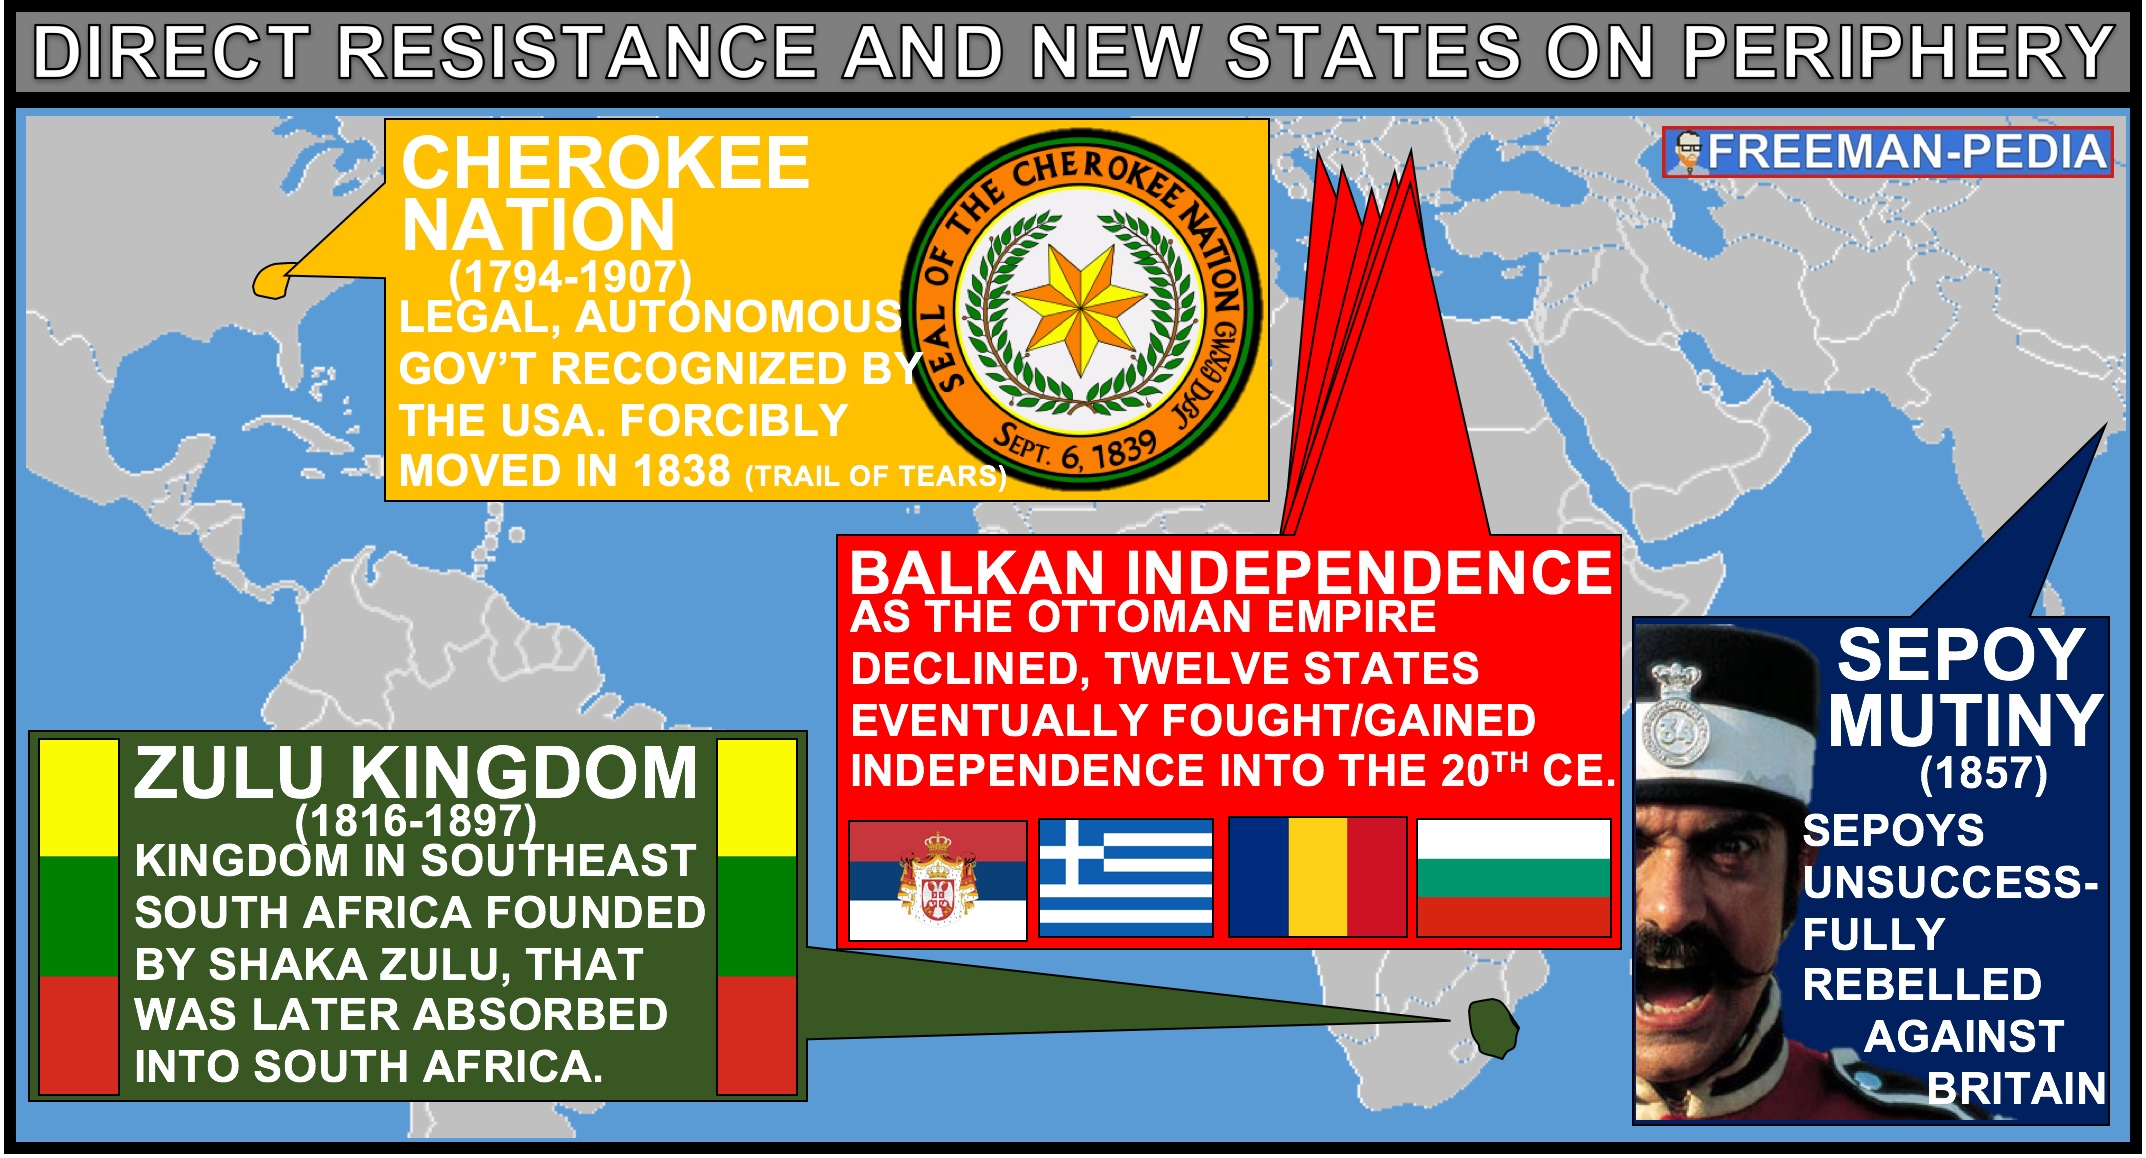 C. Anti-resistance took various forms, including direct resistance within empires and the creation of new states on the peripheries.